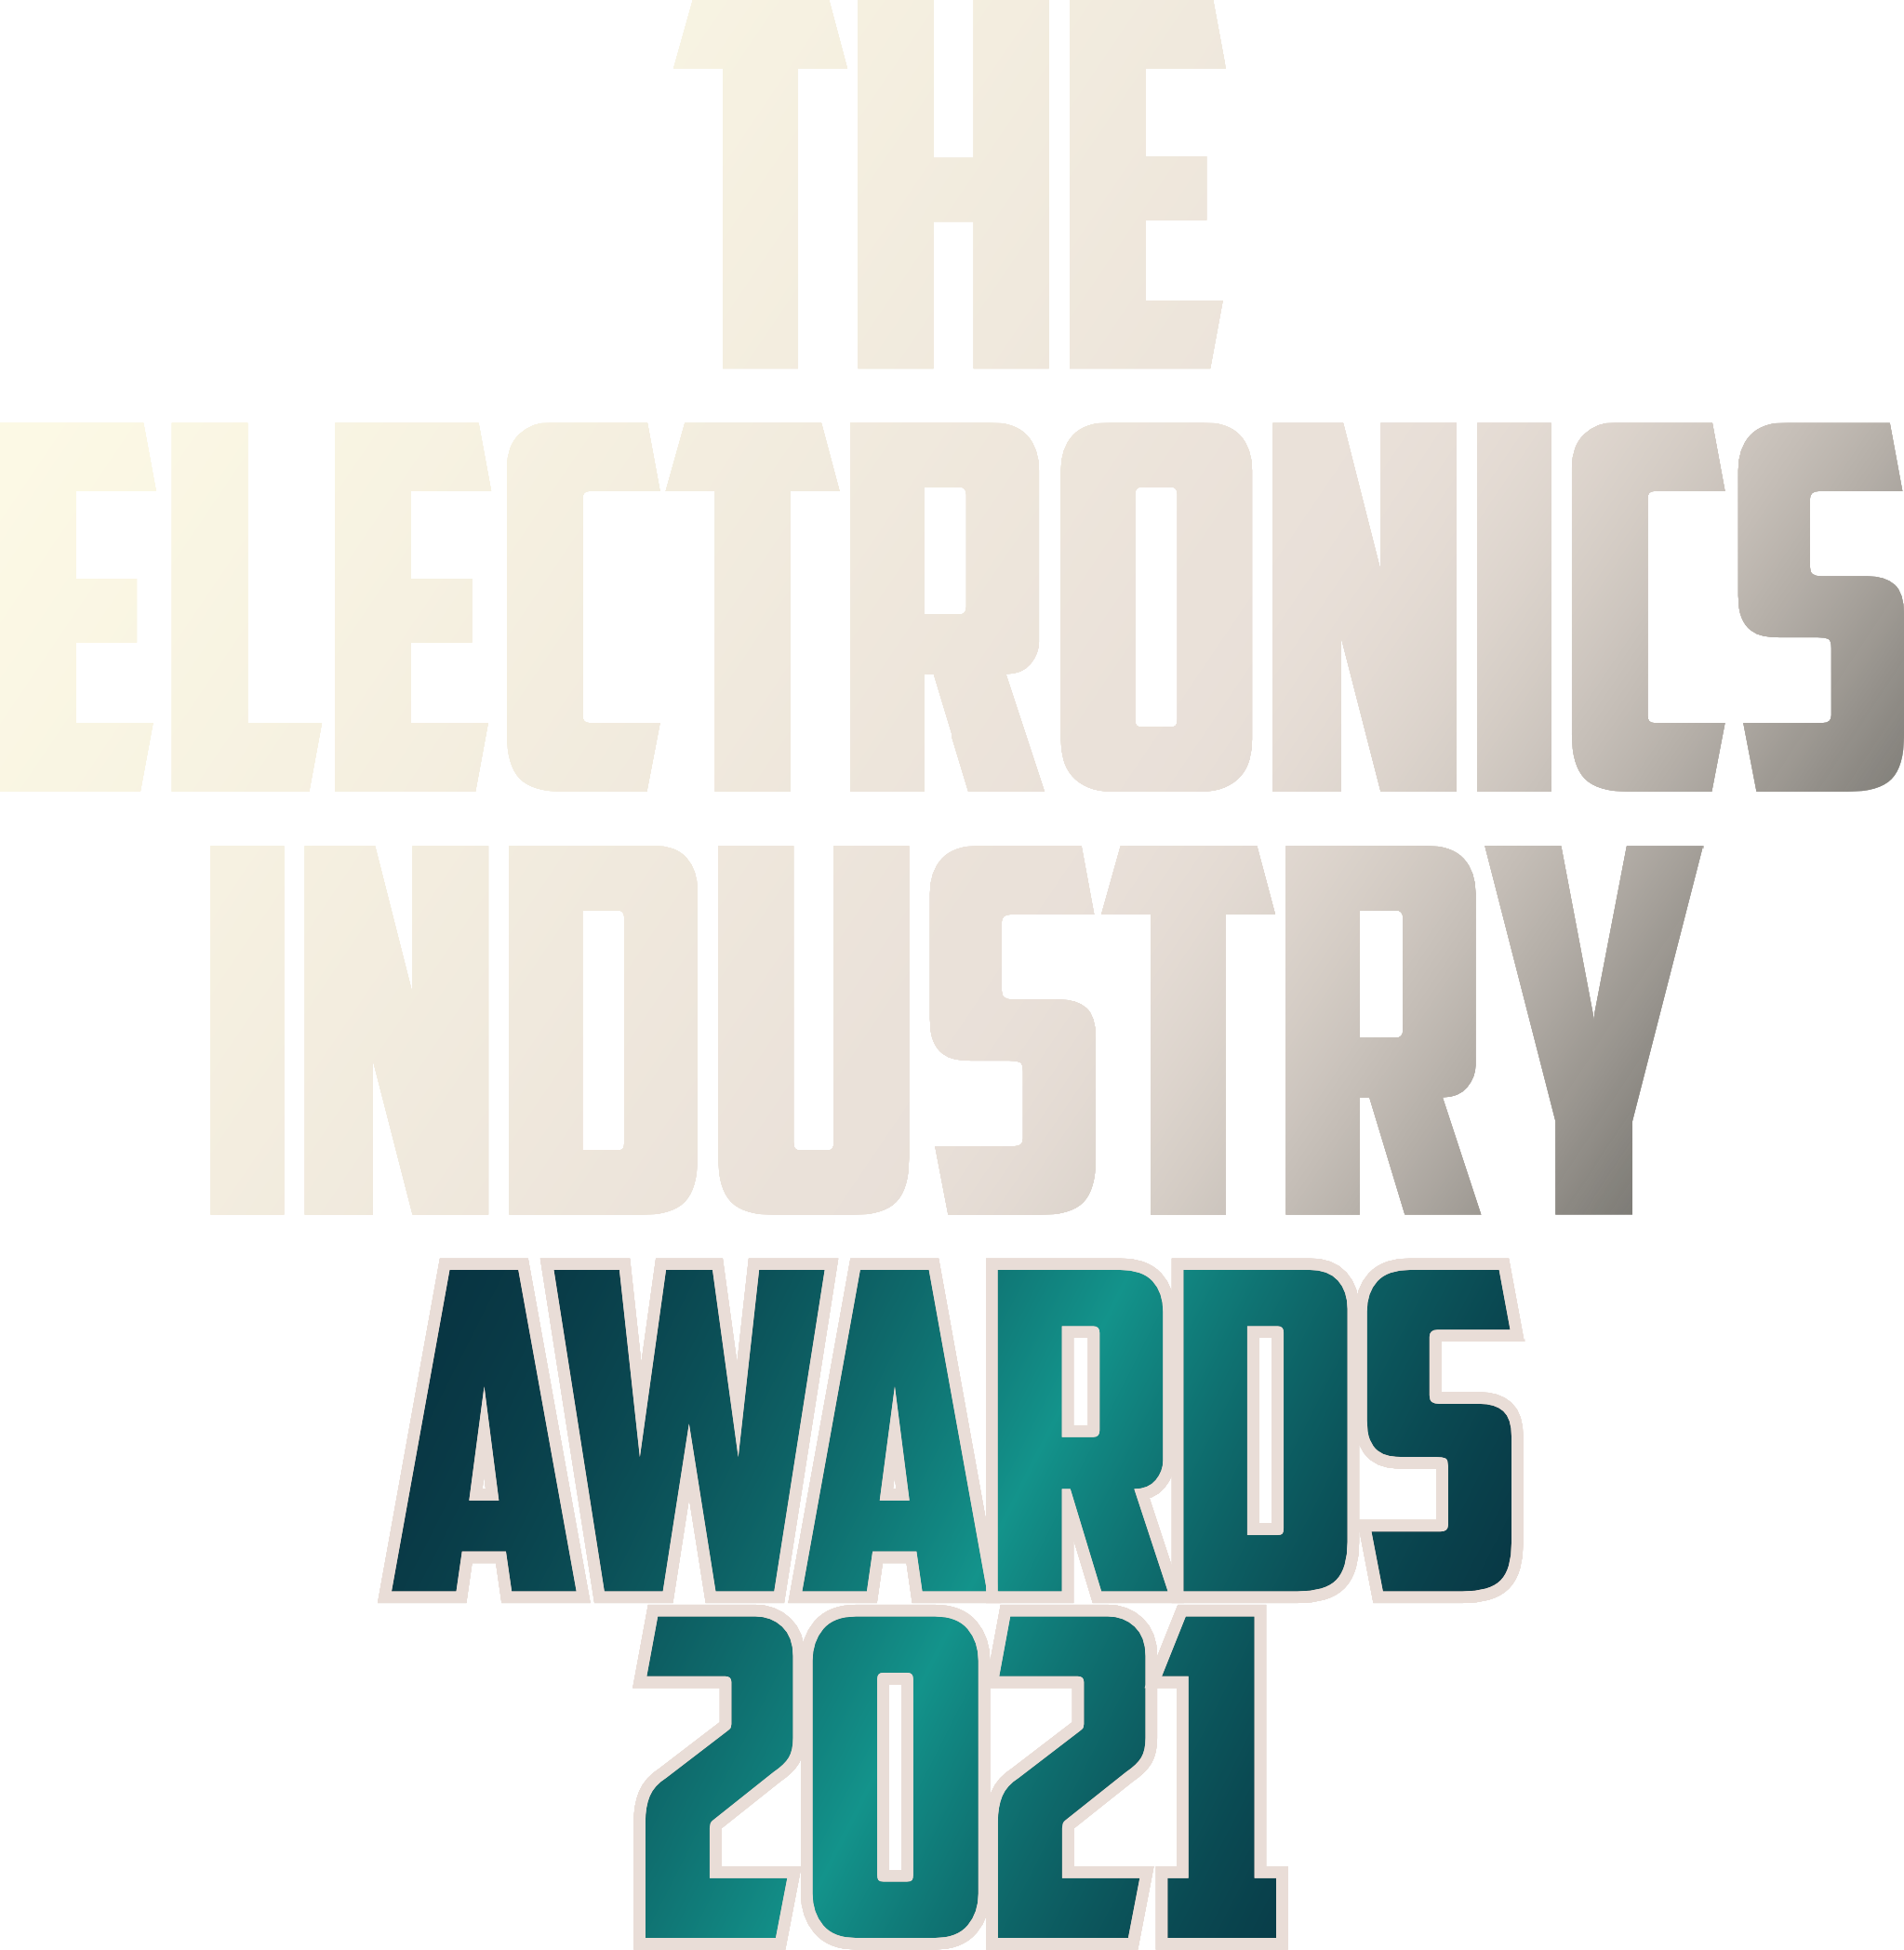 The Electronics Industry Awards